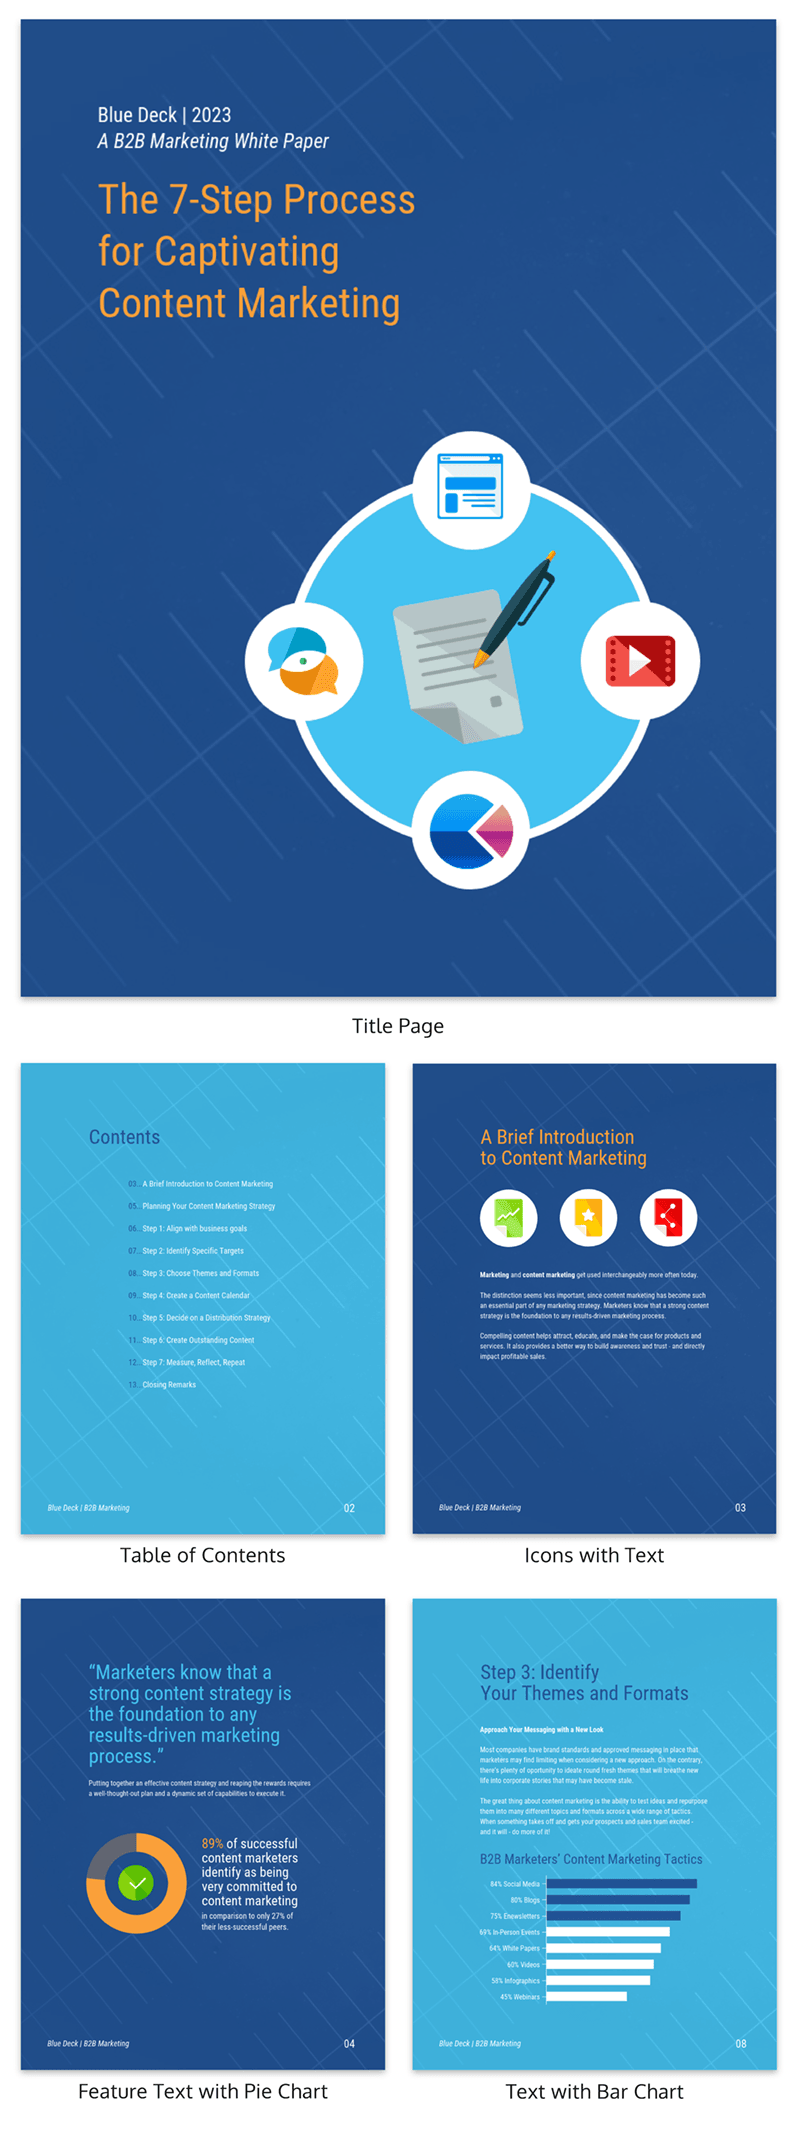 B2B Content Marketing White Paper Template